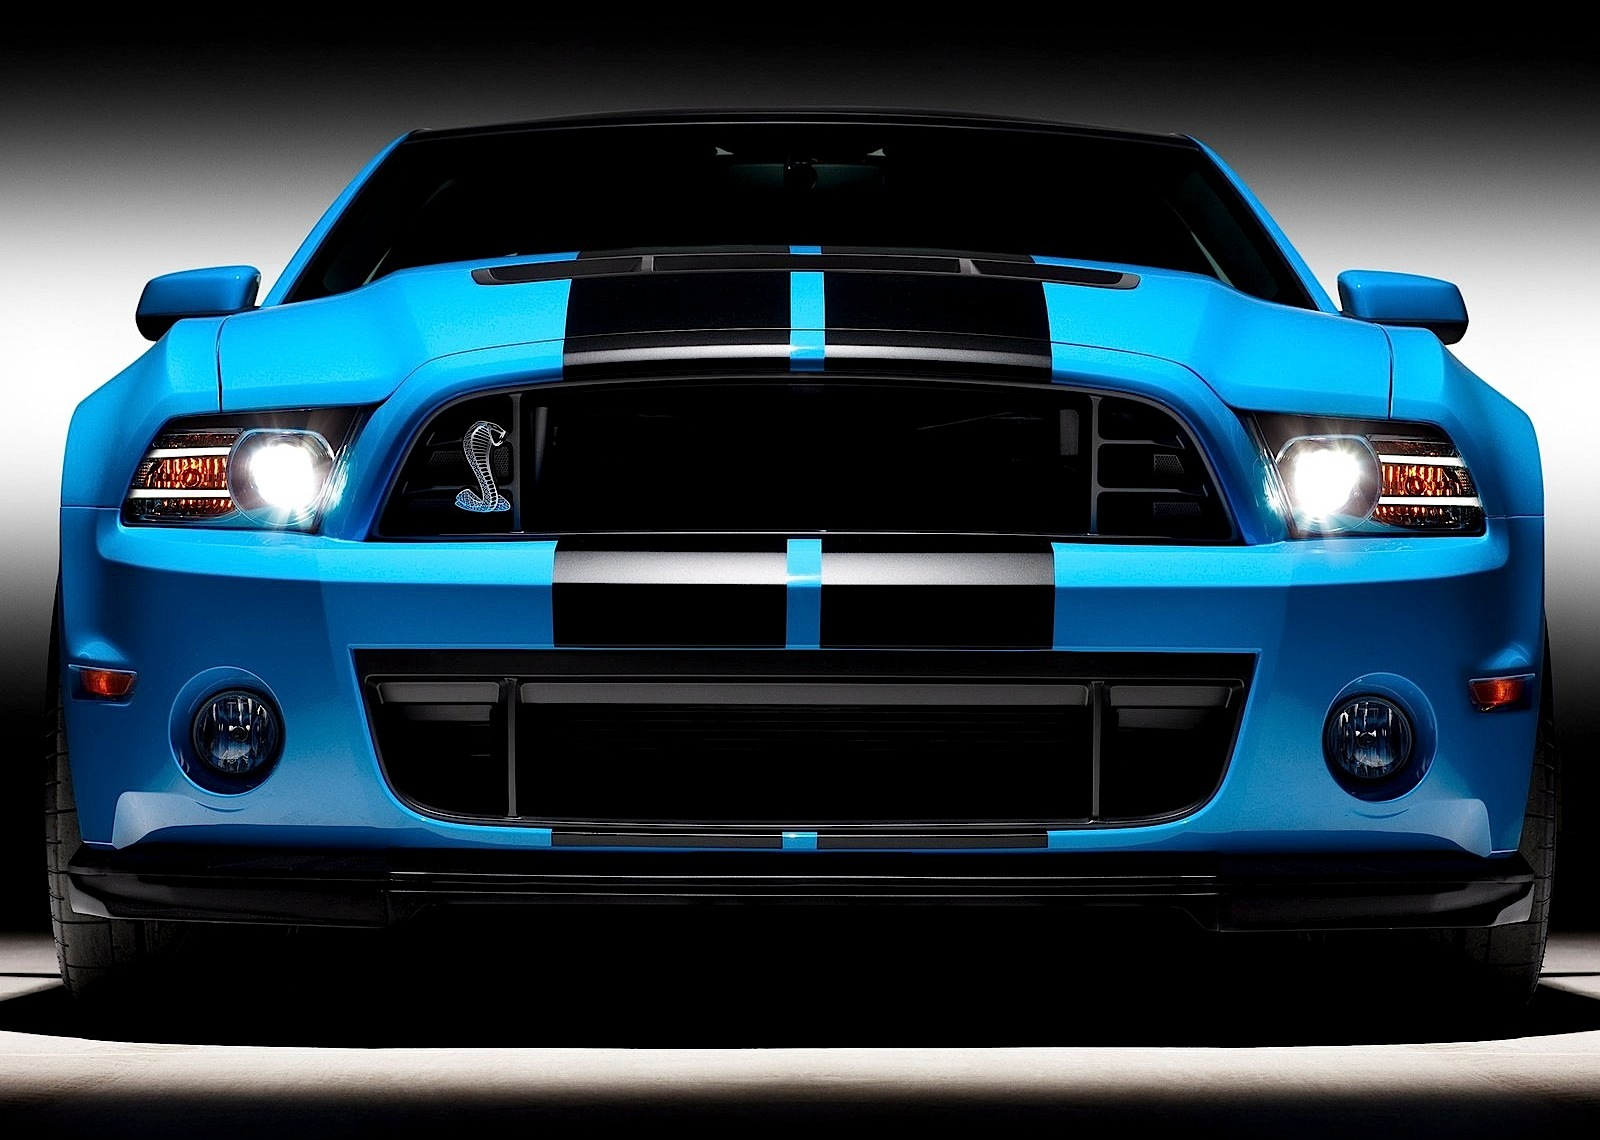 ford mustang shelby gt500 specs photos 2012 2013 2014 2015 2016 2017 2018 autoevolution. Black Bedroom Furniture Sets. Home Design Ideas